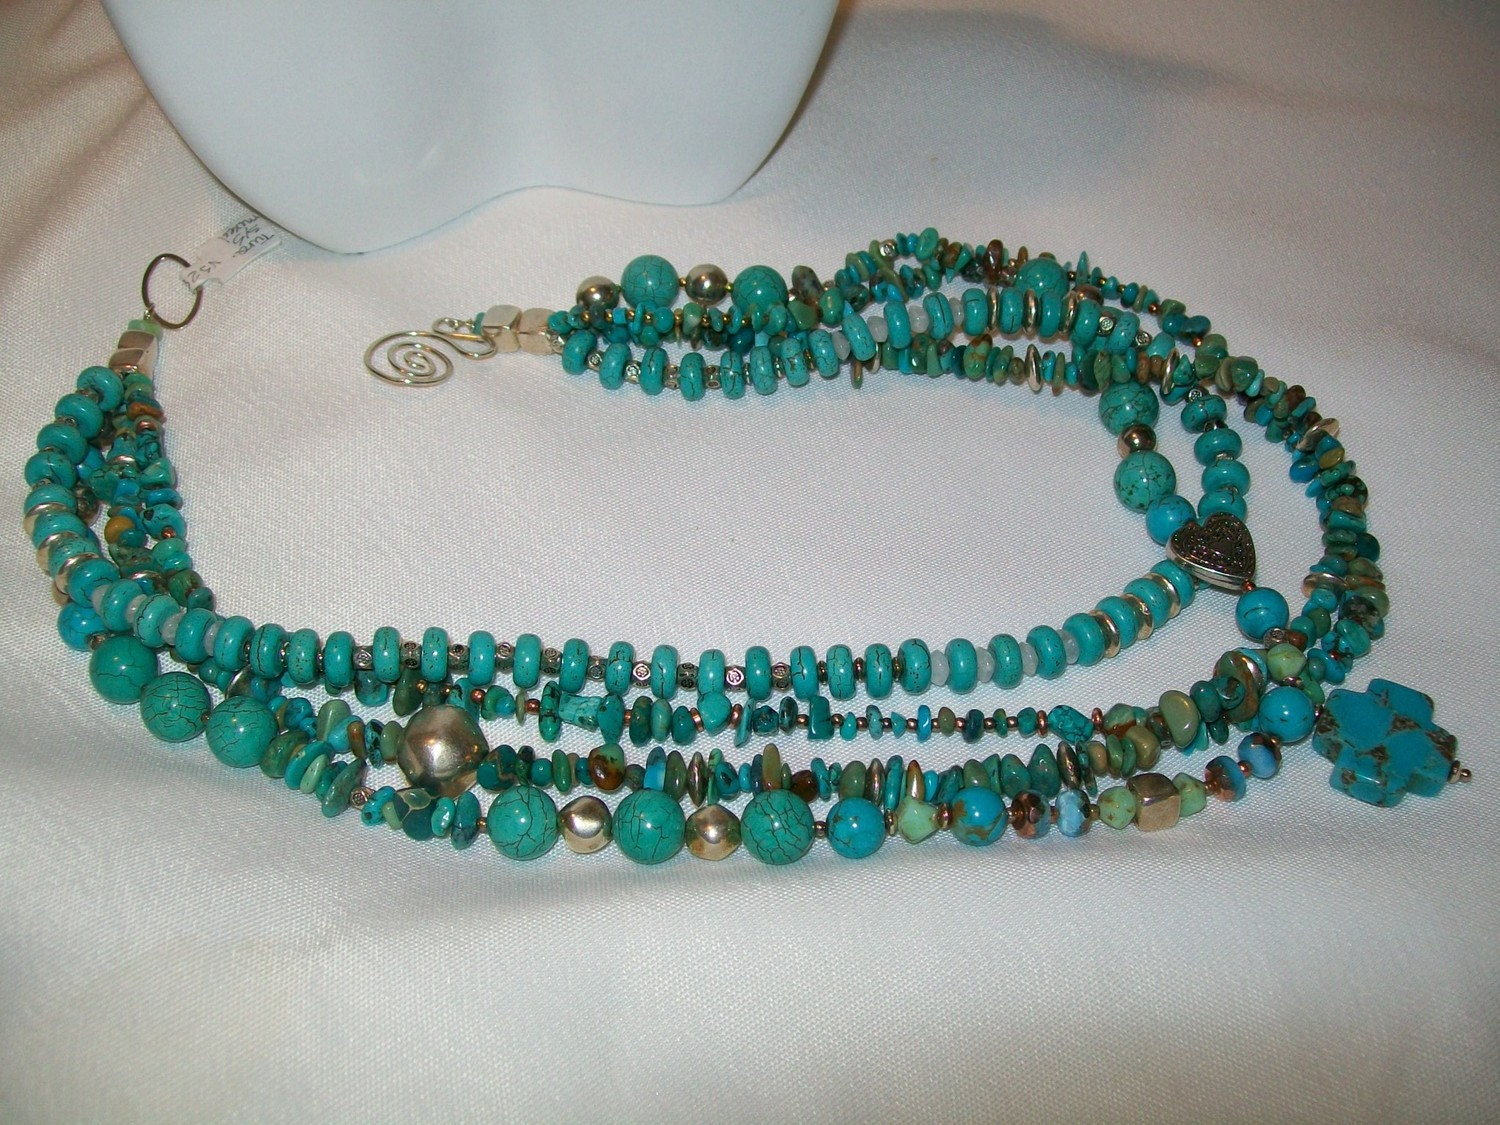 Turquoise Cross Multi-Strand Necklace